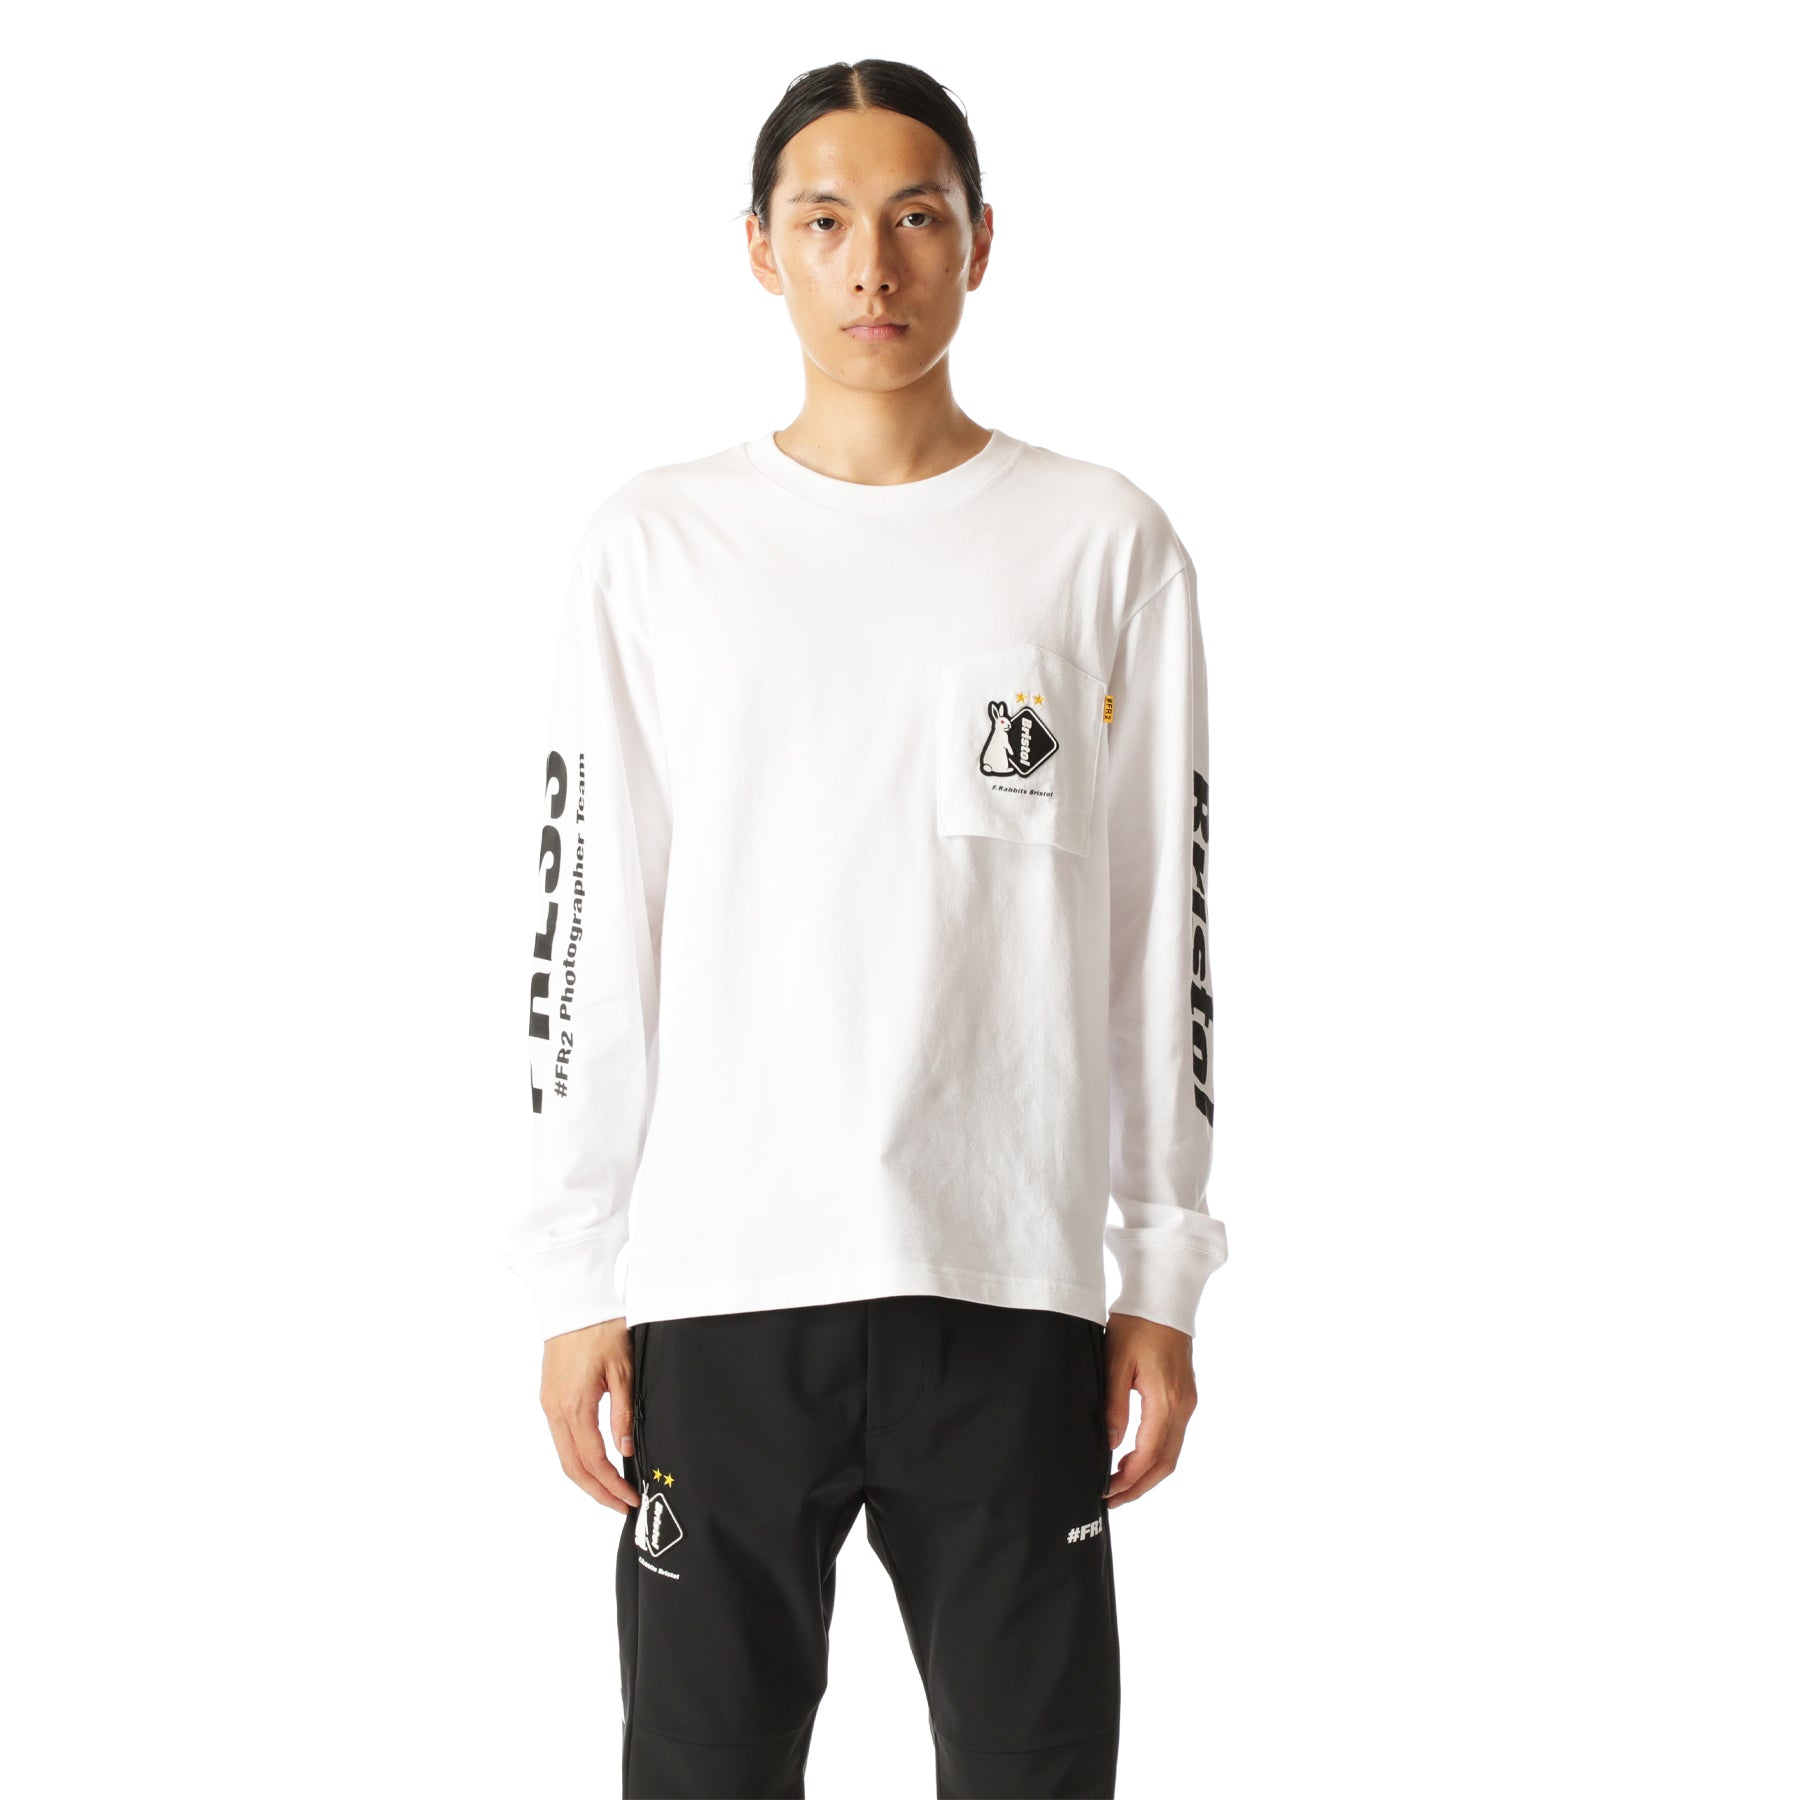 x FCRB L/S Tee FRC1111 White